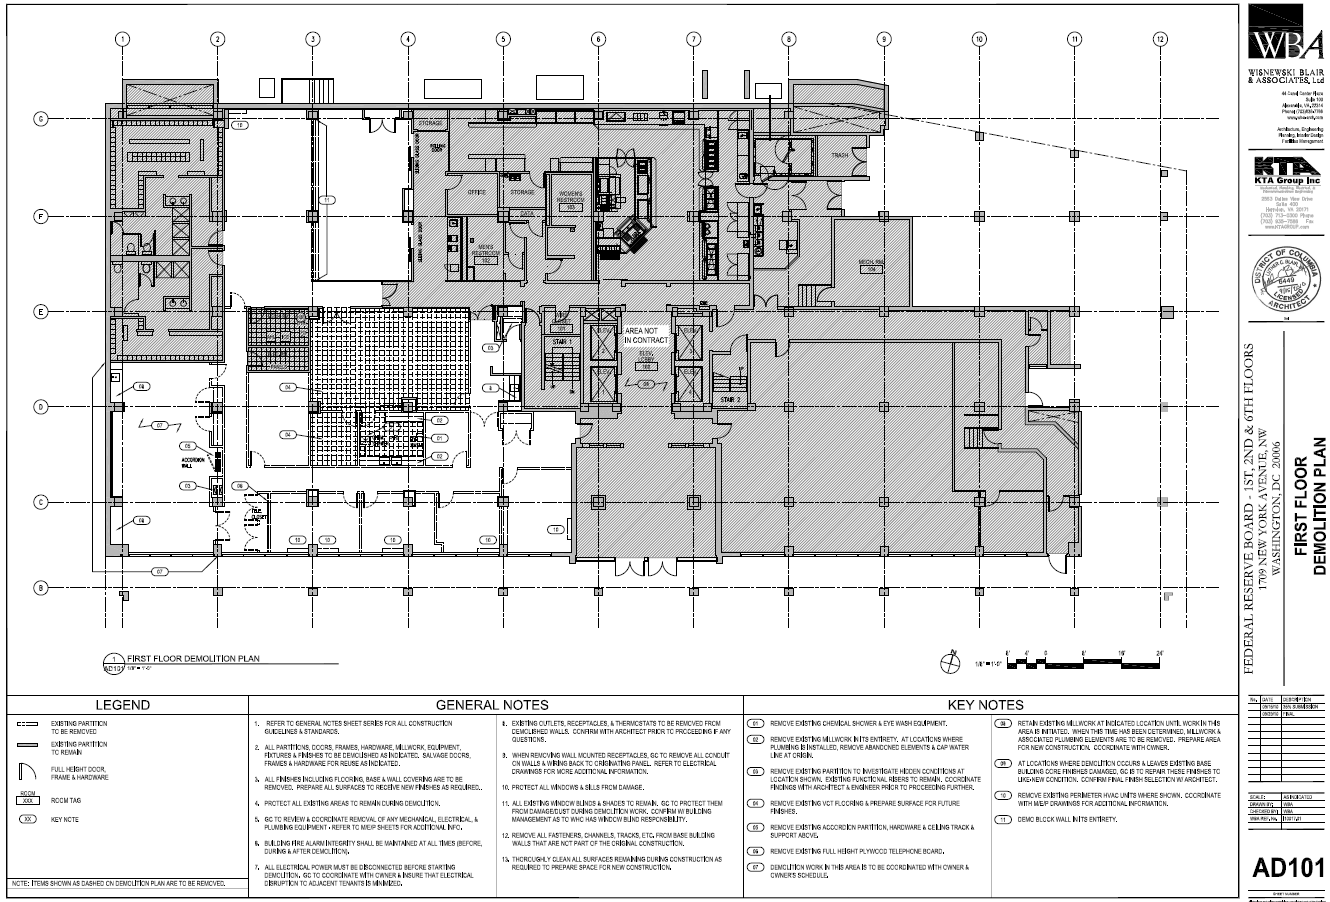 Federal reserve board of governors new york ave building first floor layout malvernweather Images